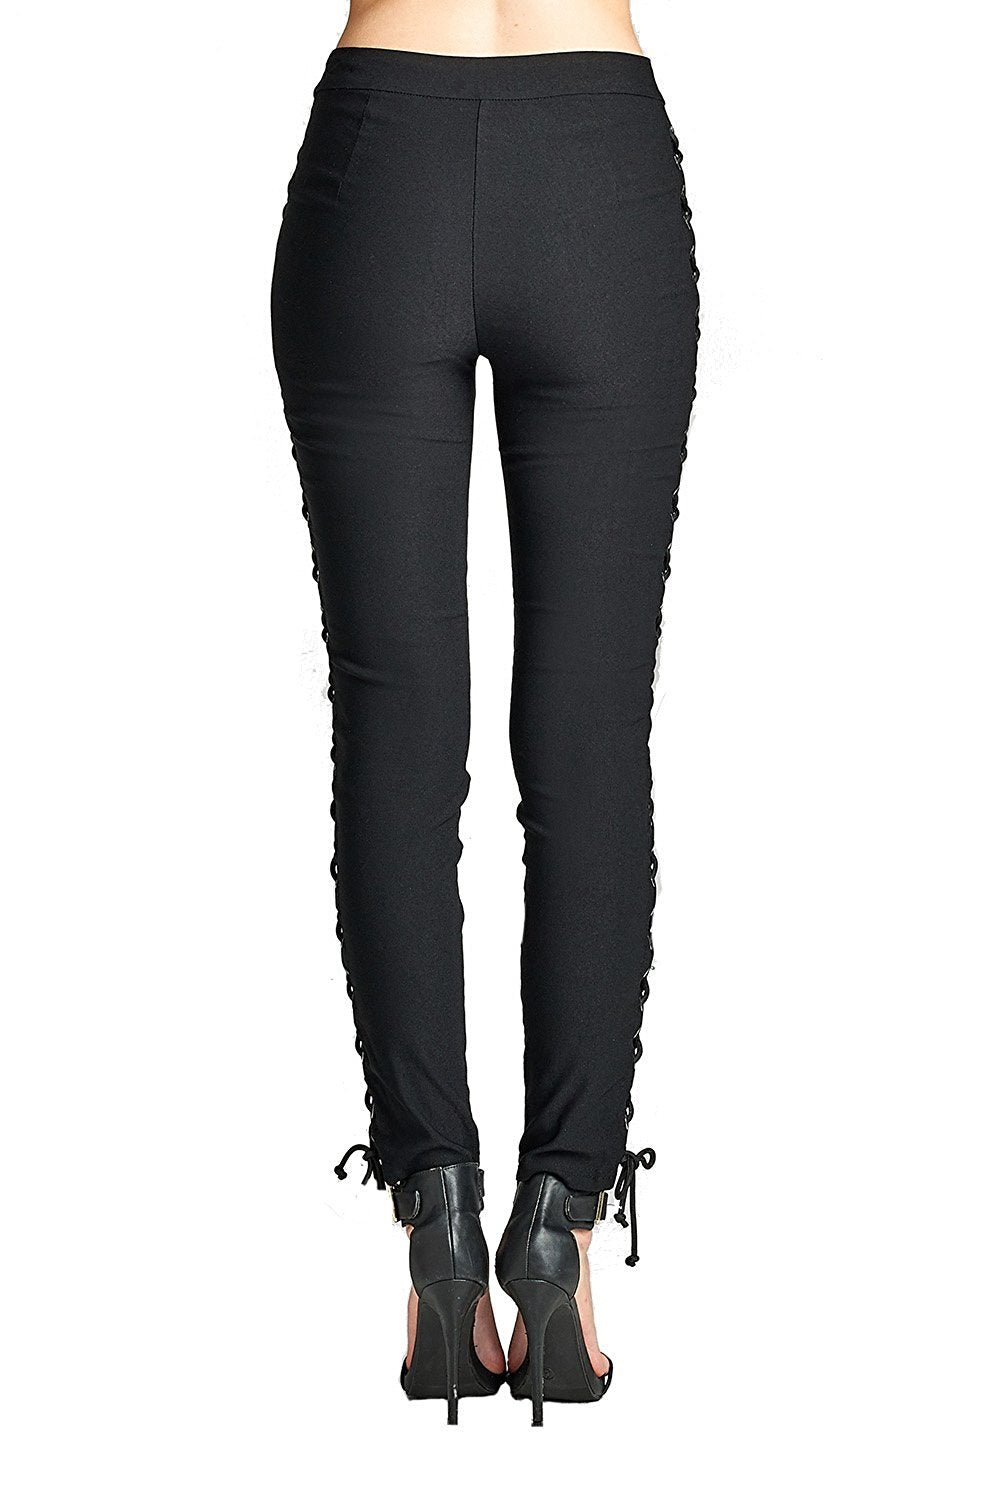 Khanomak Plain Stretch High Rise Waist Side Lace Up Front Single Button Long Skinny Legging Pants